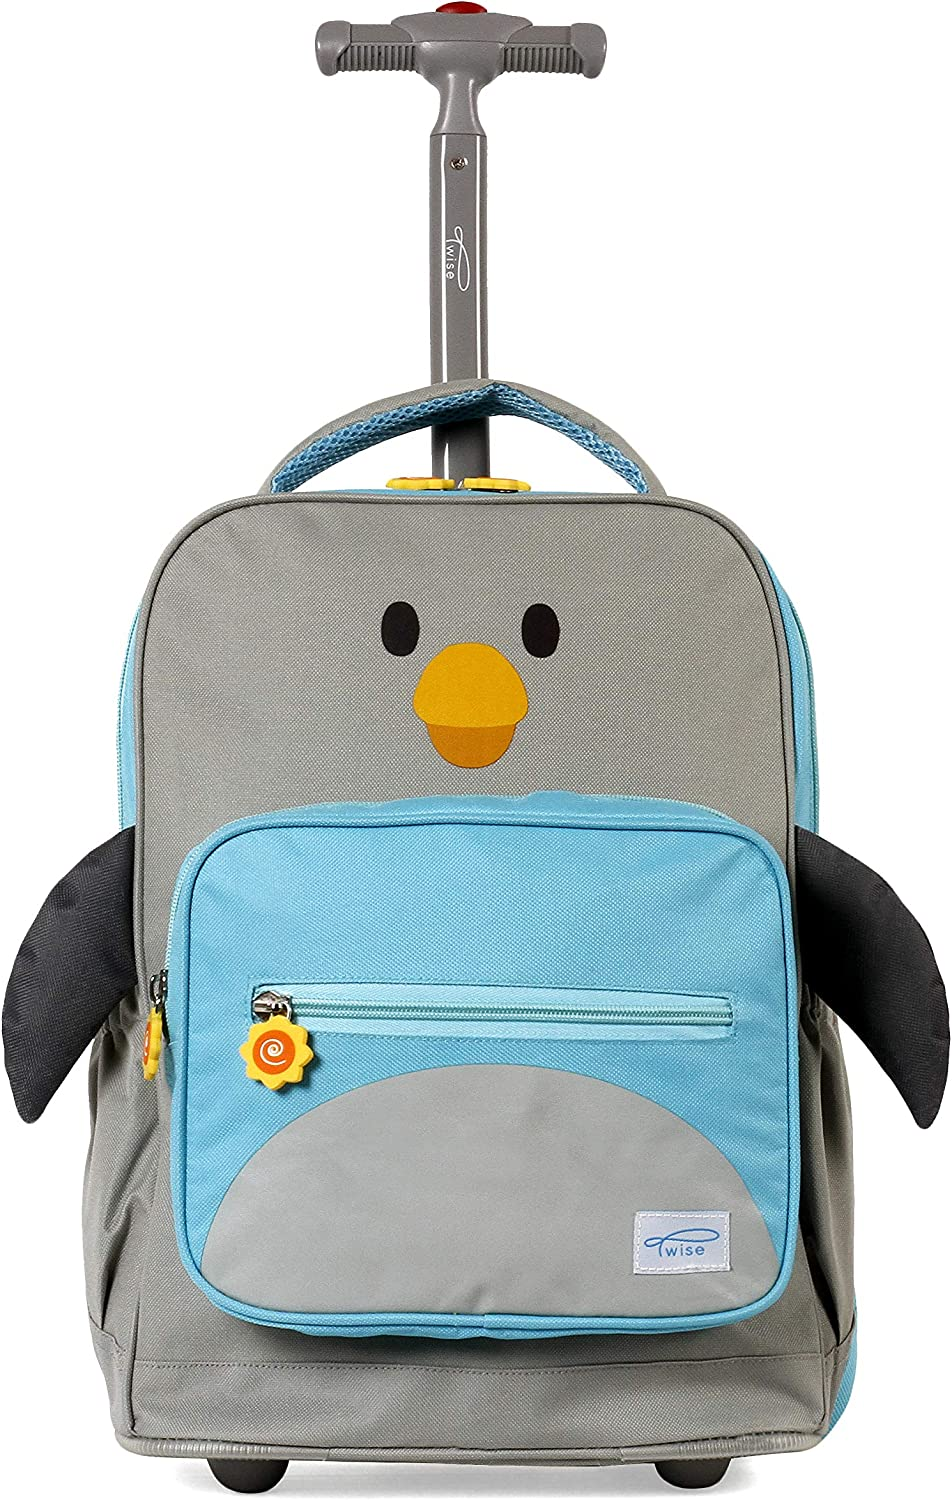 TWISE SIDE-KICK TRAVEL ROLLING BACKPACK FOR KIDS AND TODDLERS (PENGUIN)